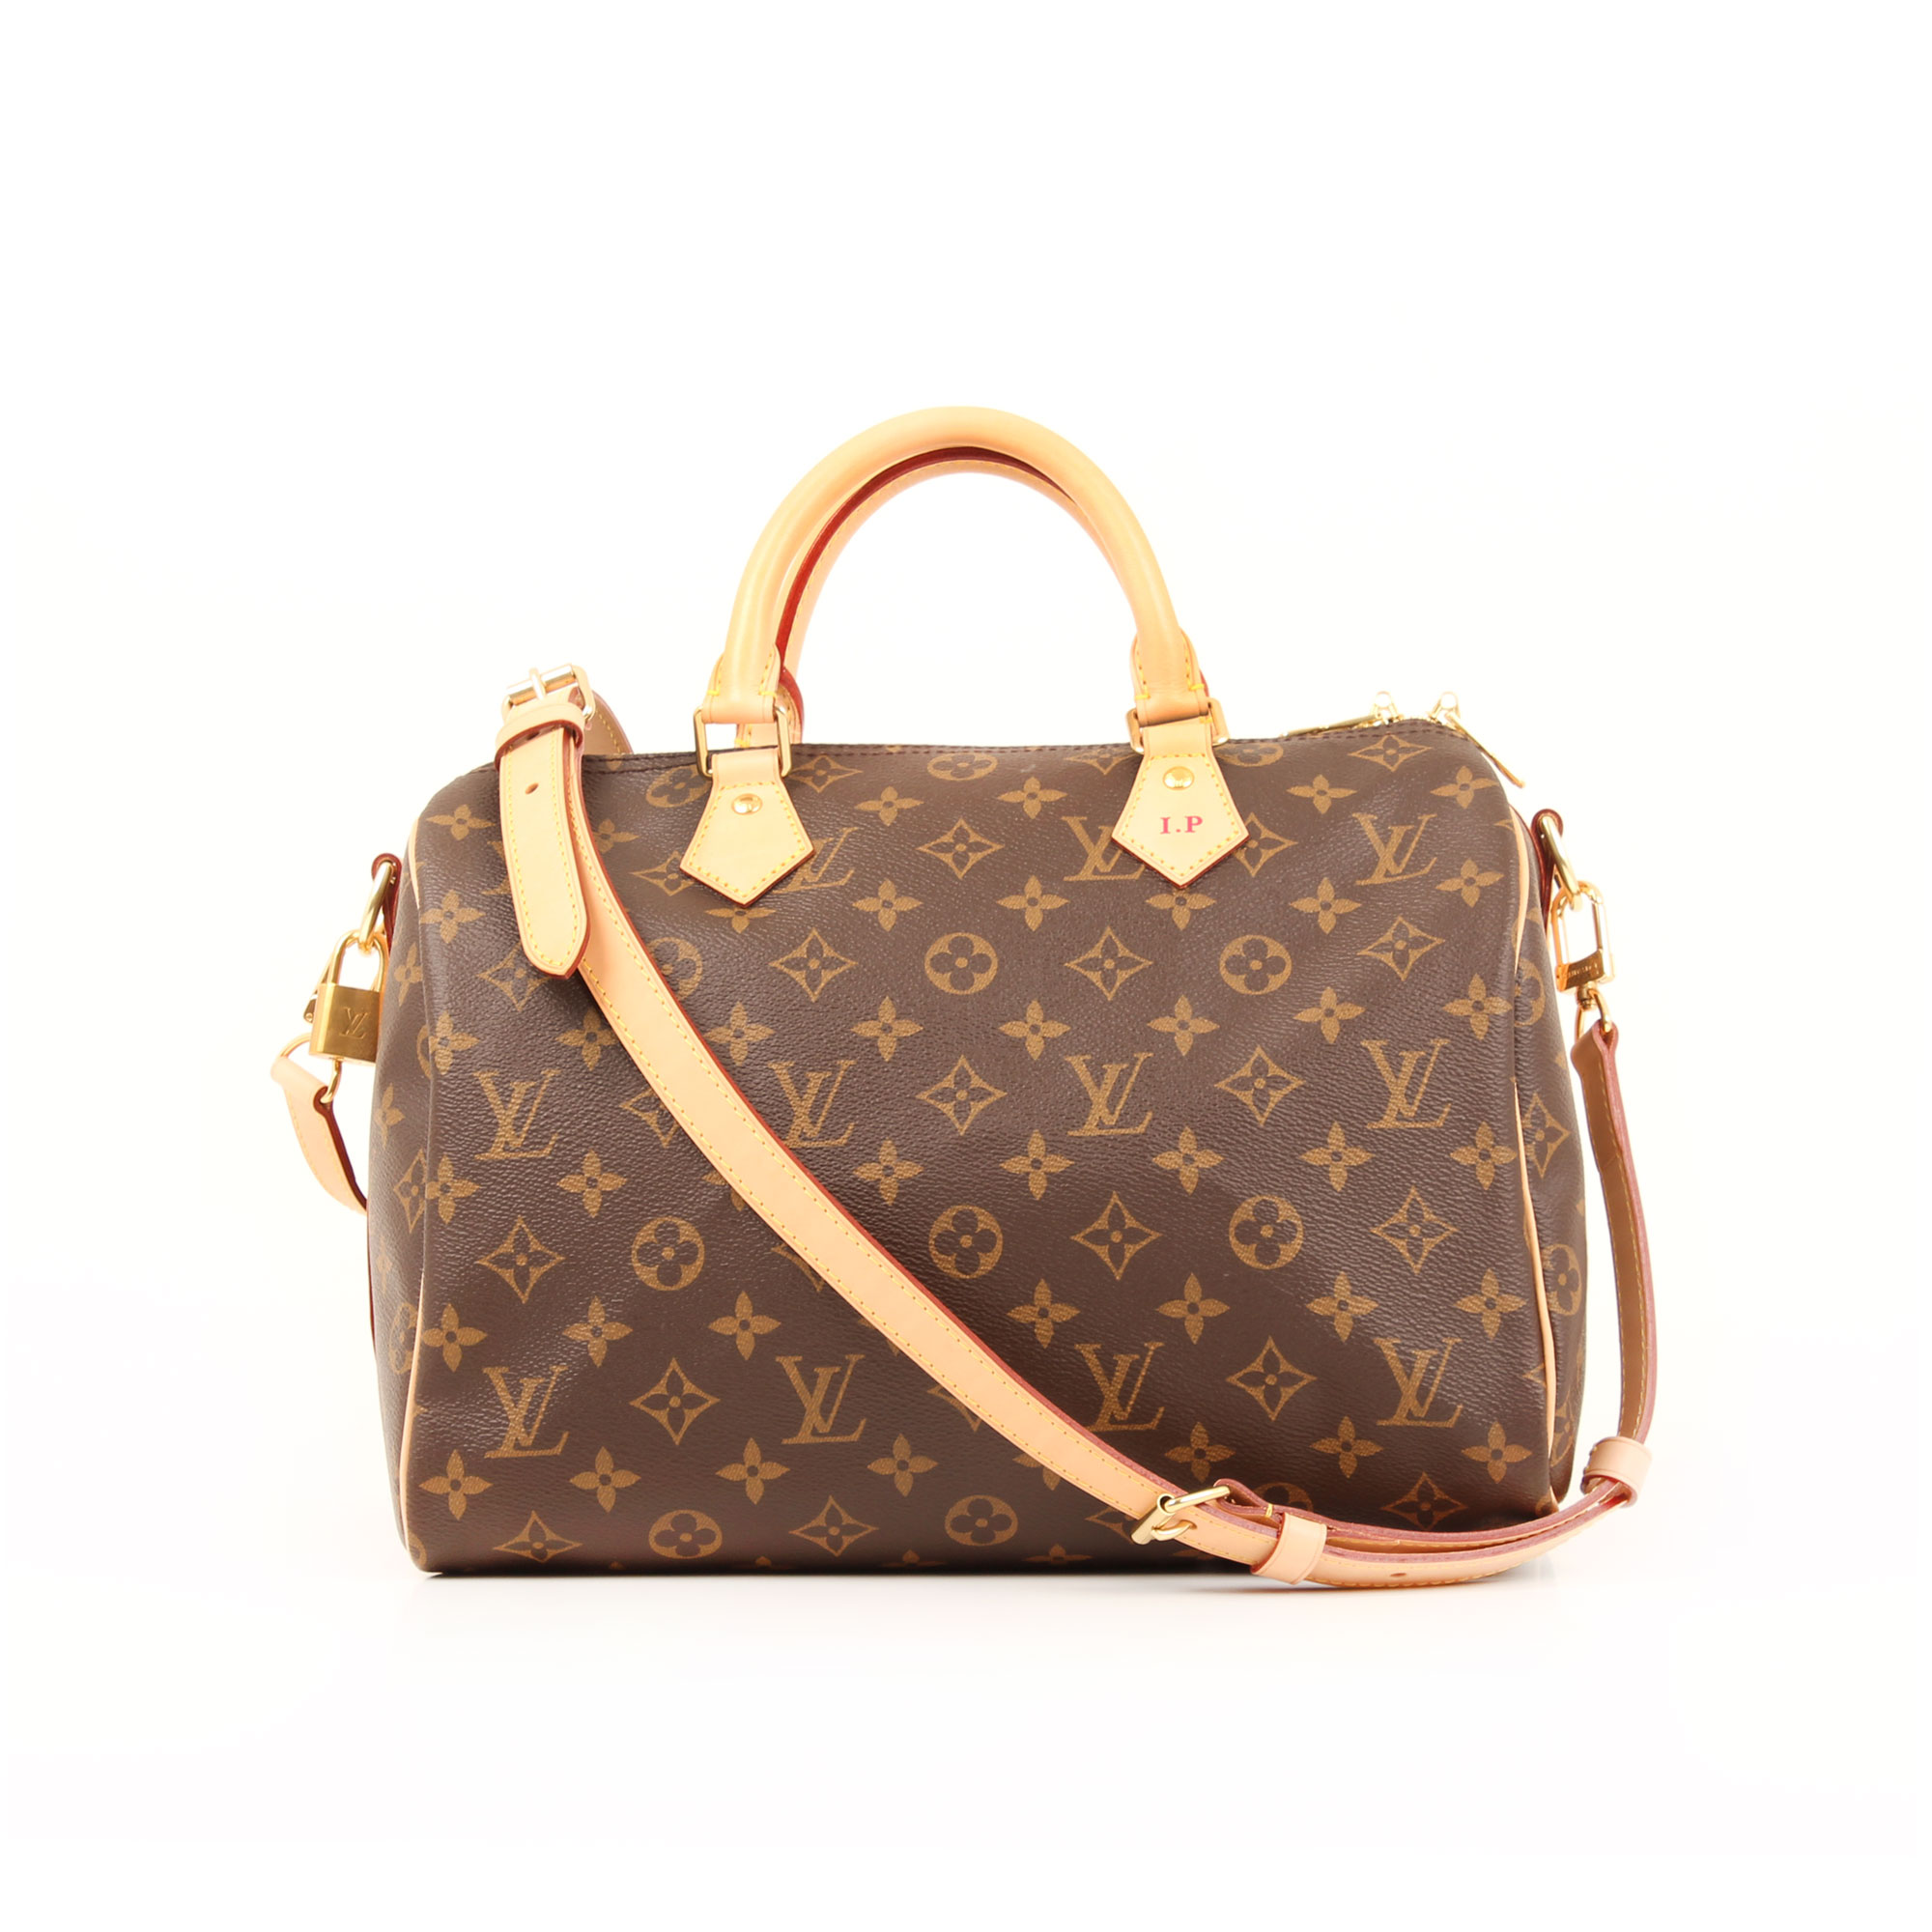 85f304b4c Front image of louis vuitton speedy 30 monogram bandouliere